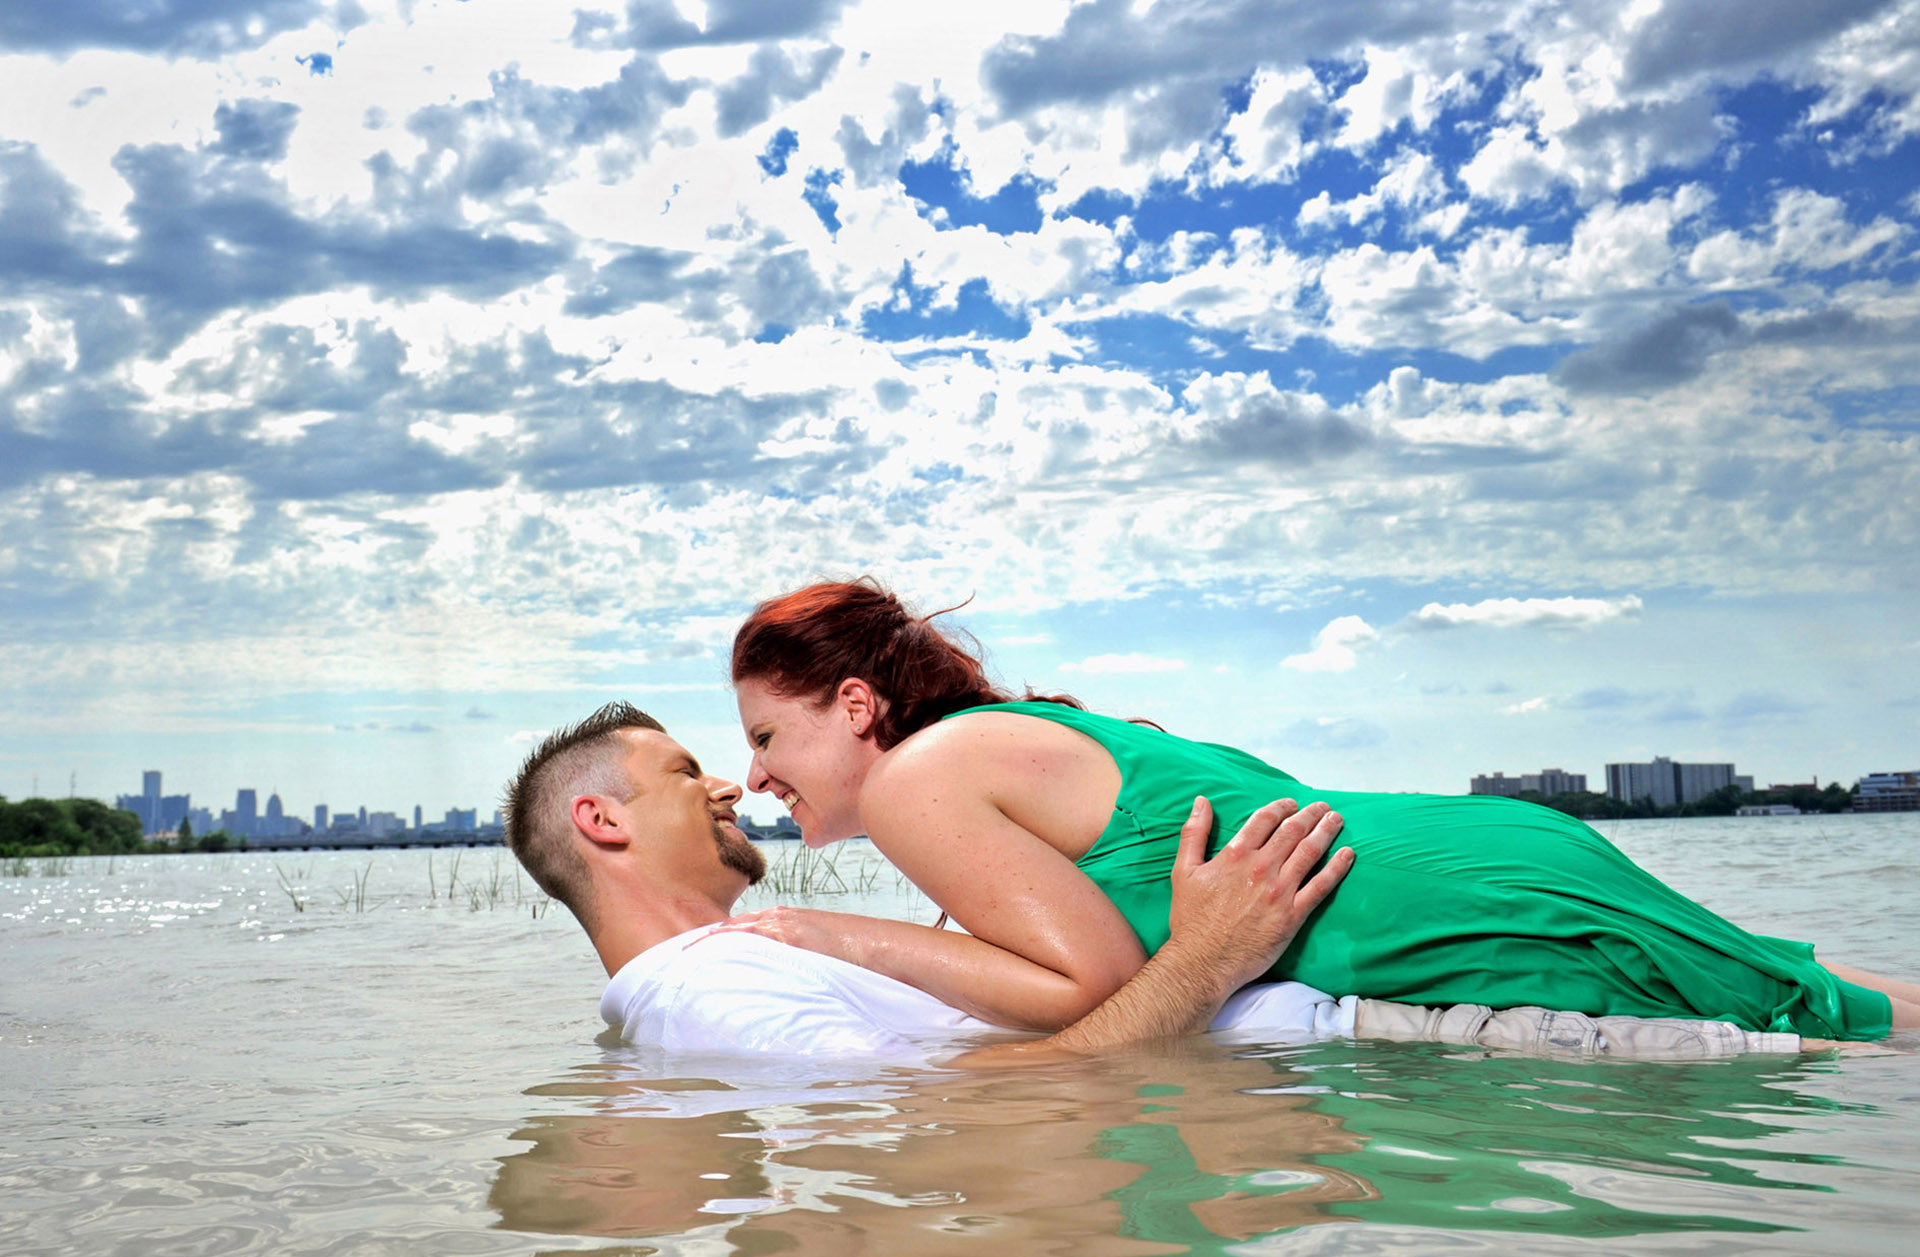 Marci Curtis Detroit engagement photographer photographs her wedding couples in places that are different and that mean something to the couple, like this couple photographed in the Detroit River in Detroit, Michigan.